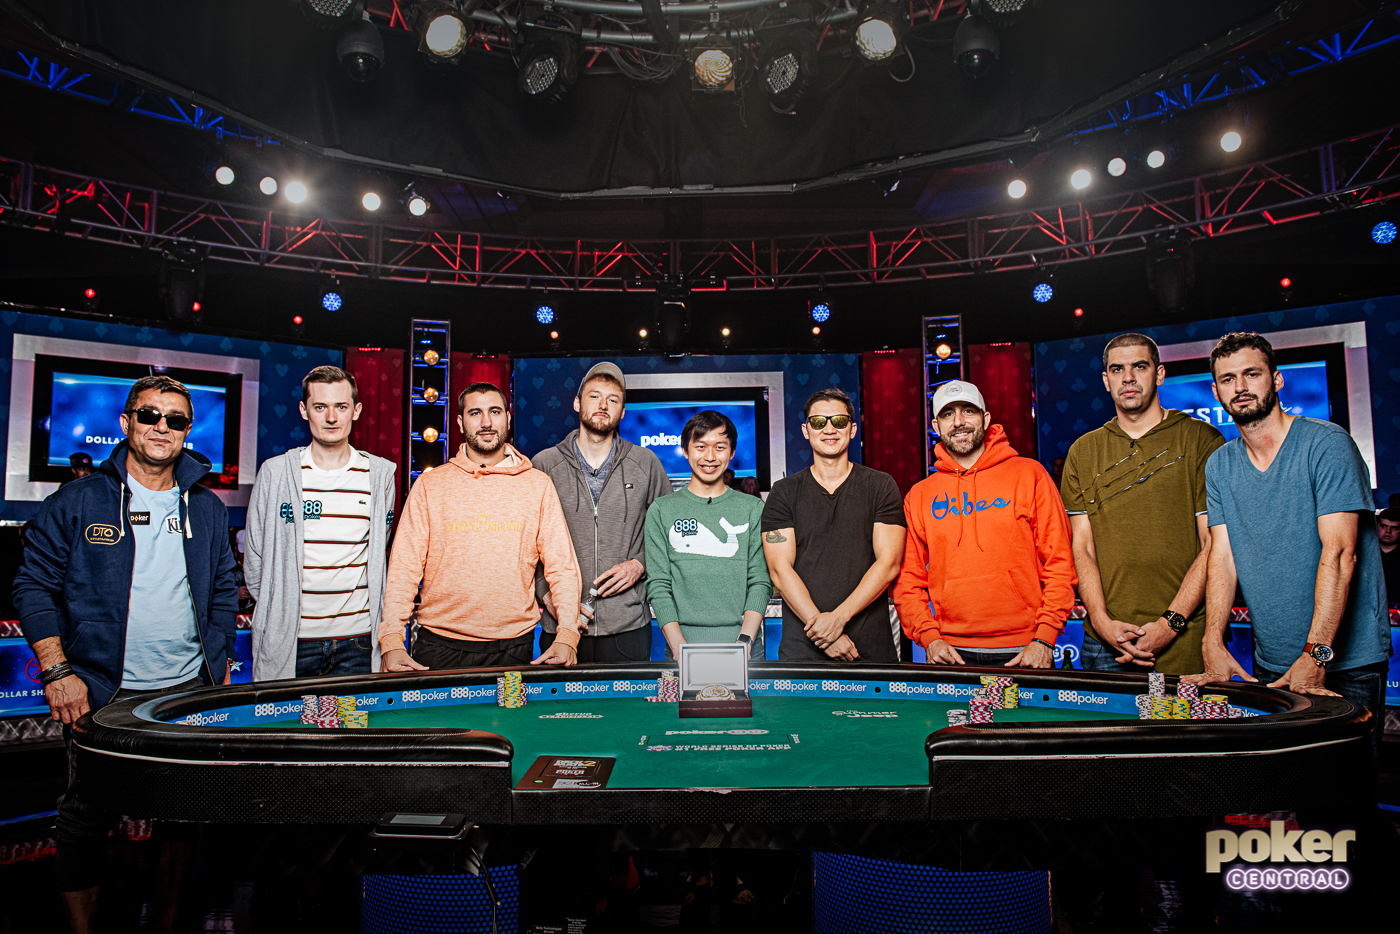 The 2019 WSOP Main Event finalist, from left to right: Hossein Ensan, Nick Marchington, Dario Sammartino, Kevin Maahs, Timothy Su, Zhen Chai, Garryy Gates, Milos Skrbic, and Alex Livingston.